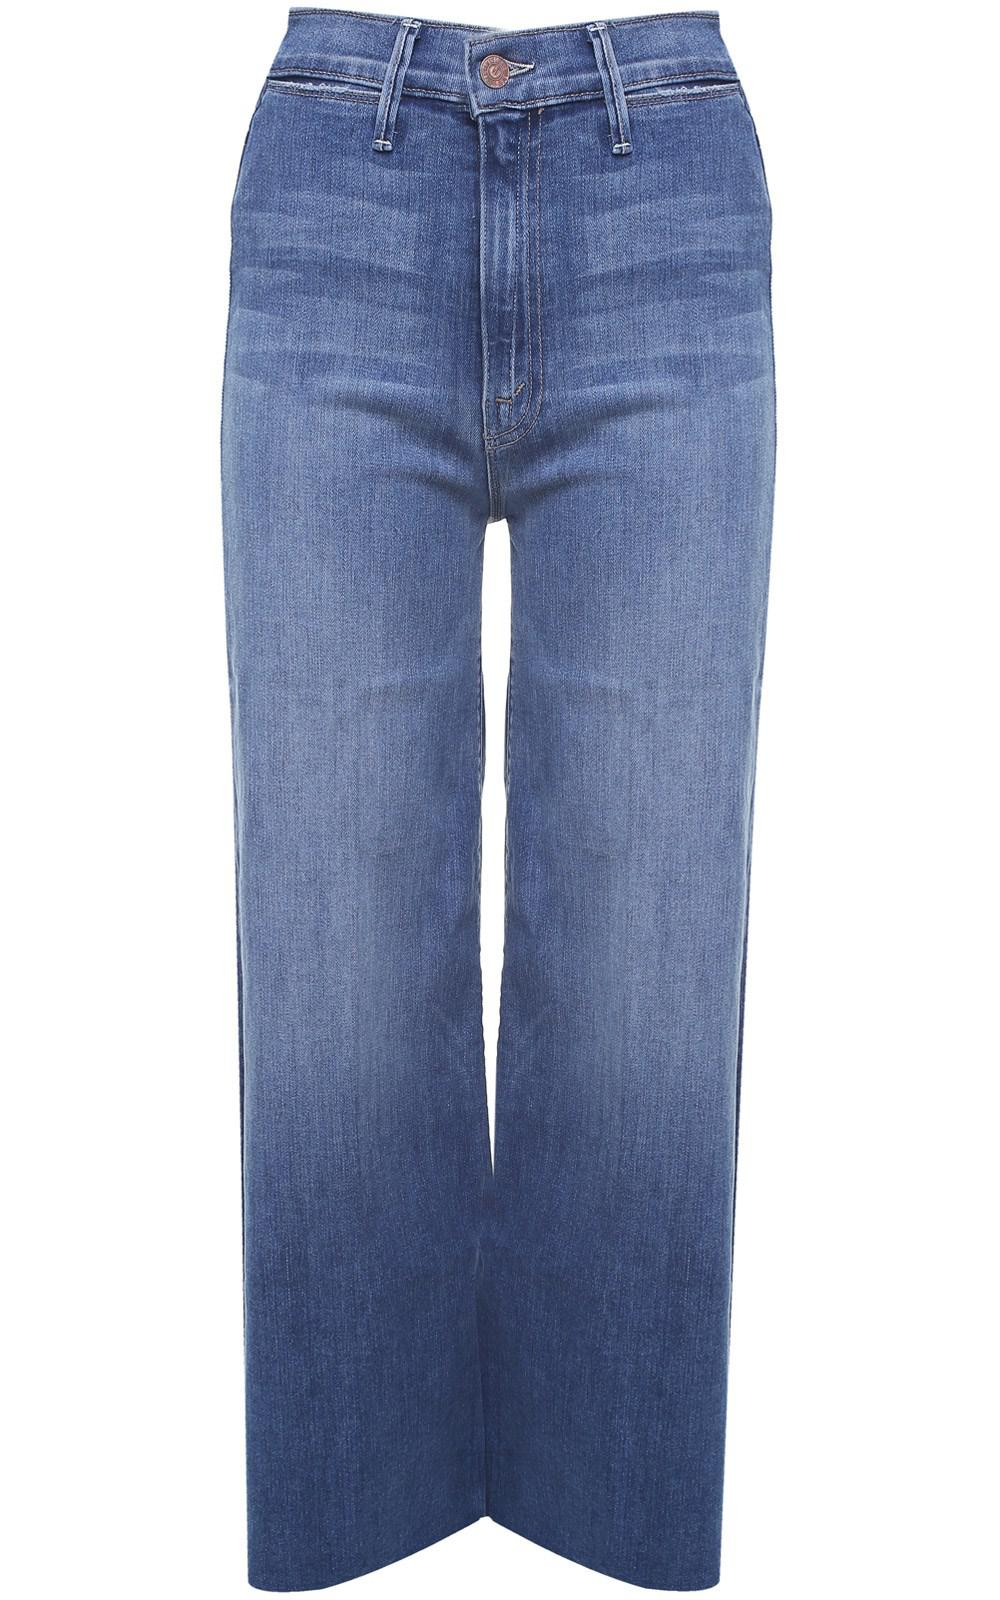 fbde21f9d58d9 Mother Swooner Crop Fray High-rise Jeans in Blue - Lyst